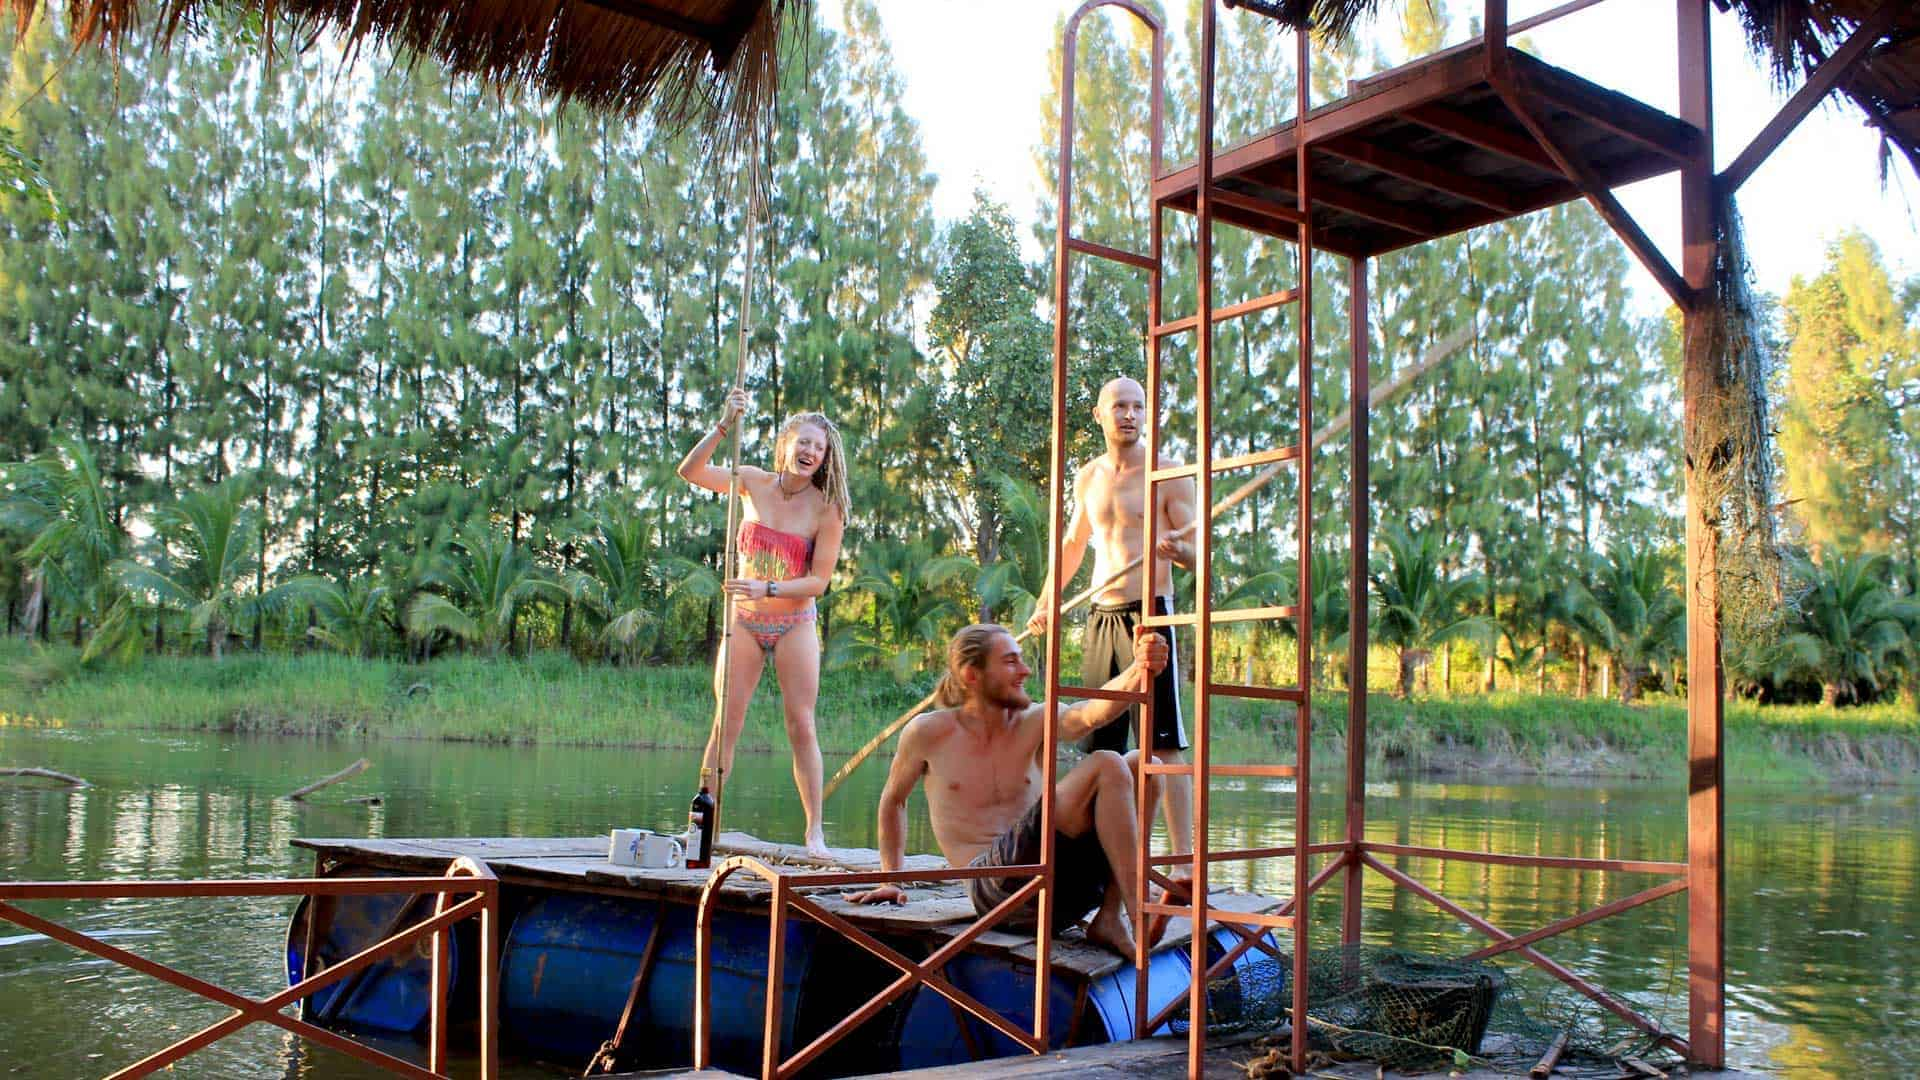 Image of permaculture students ready for swimming